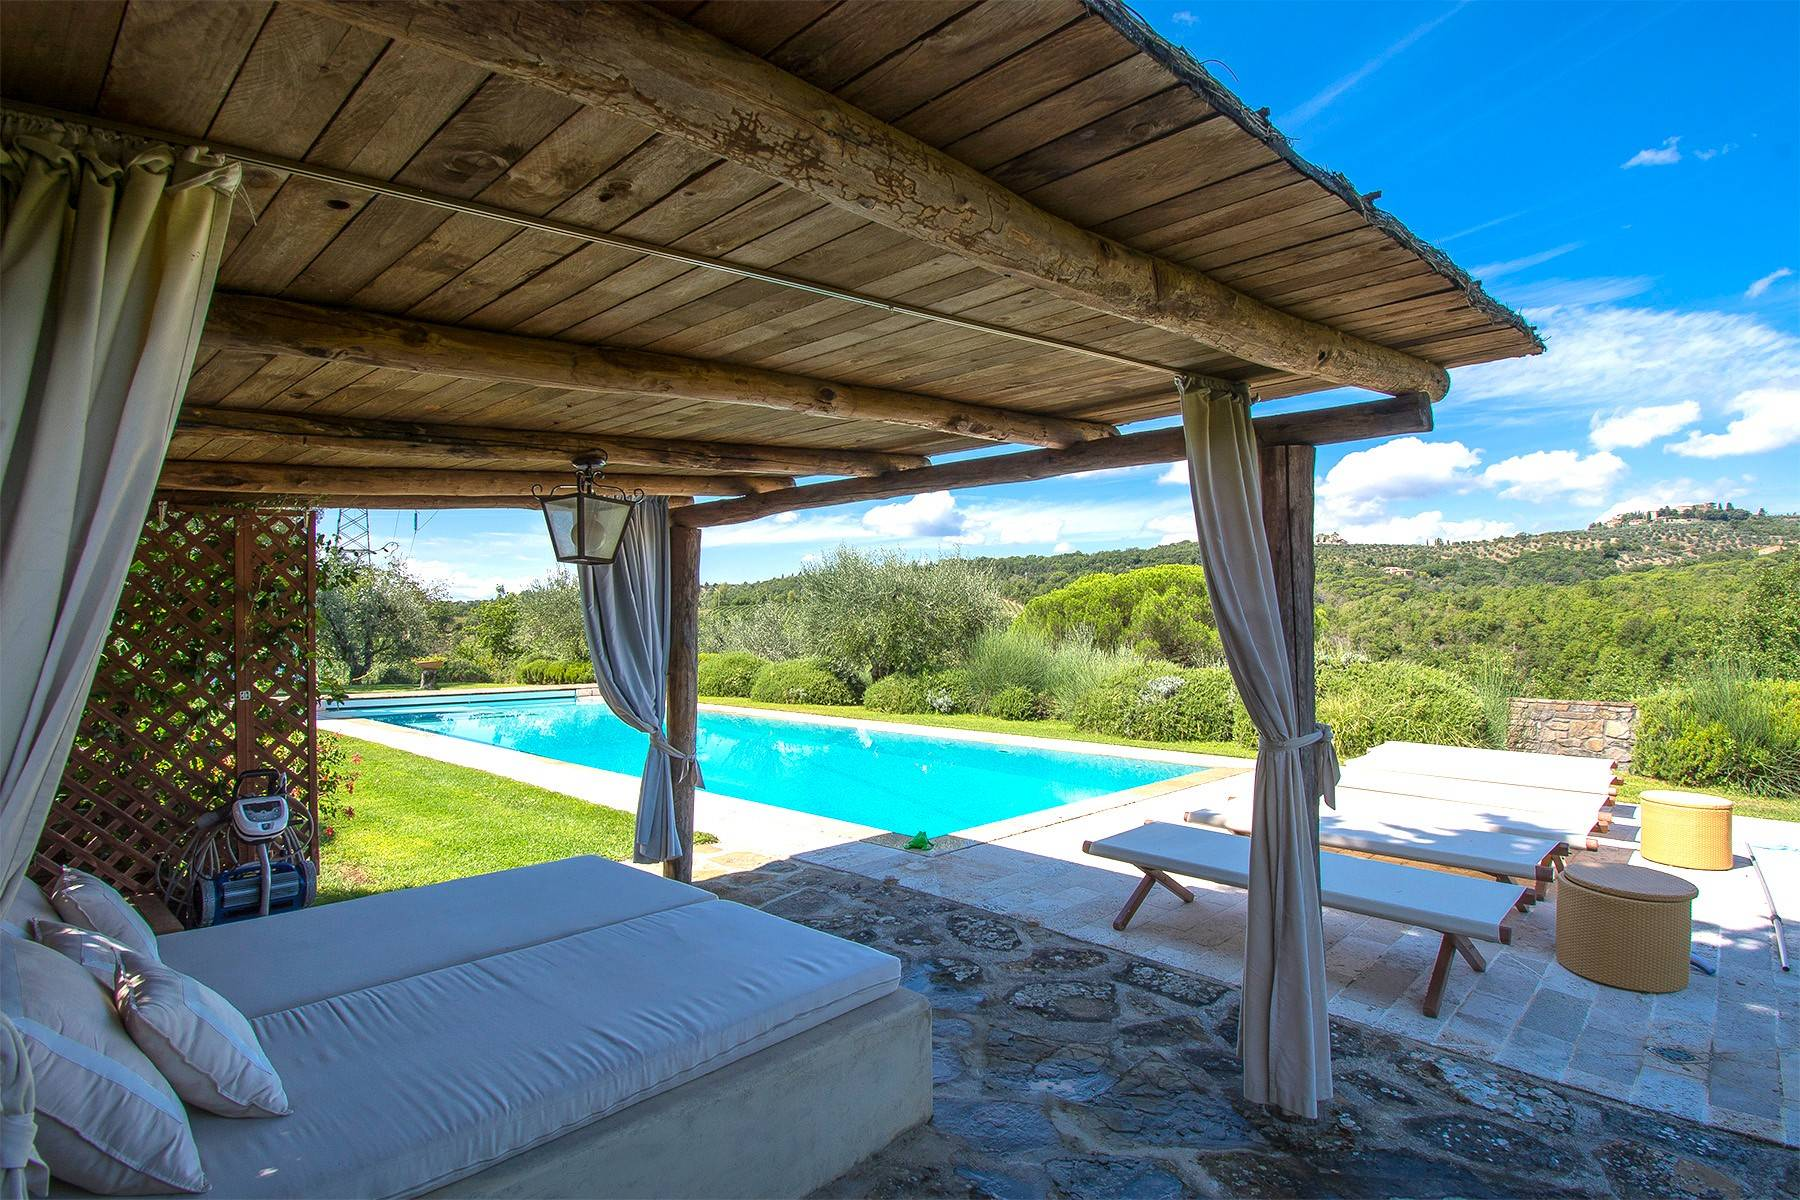 House in the Tuscan Hills for Sale - 34